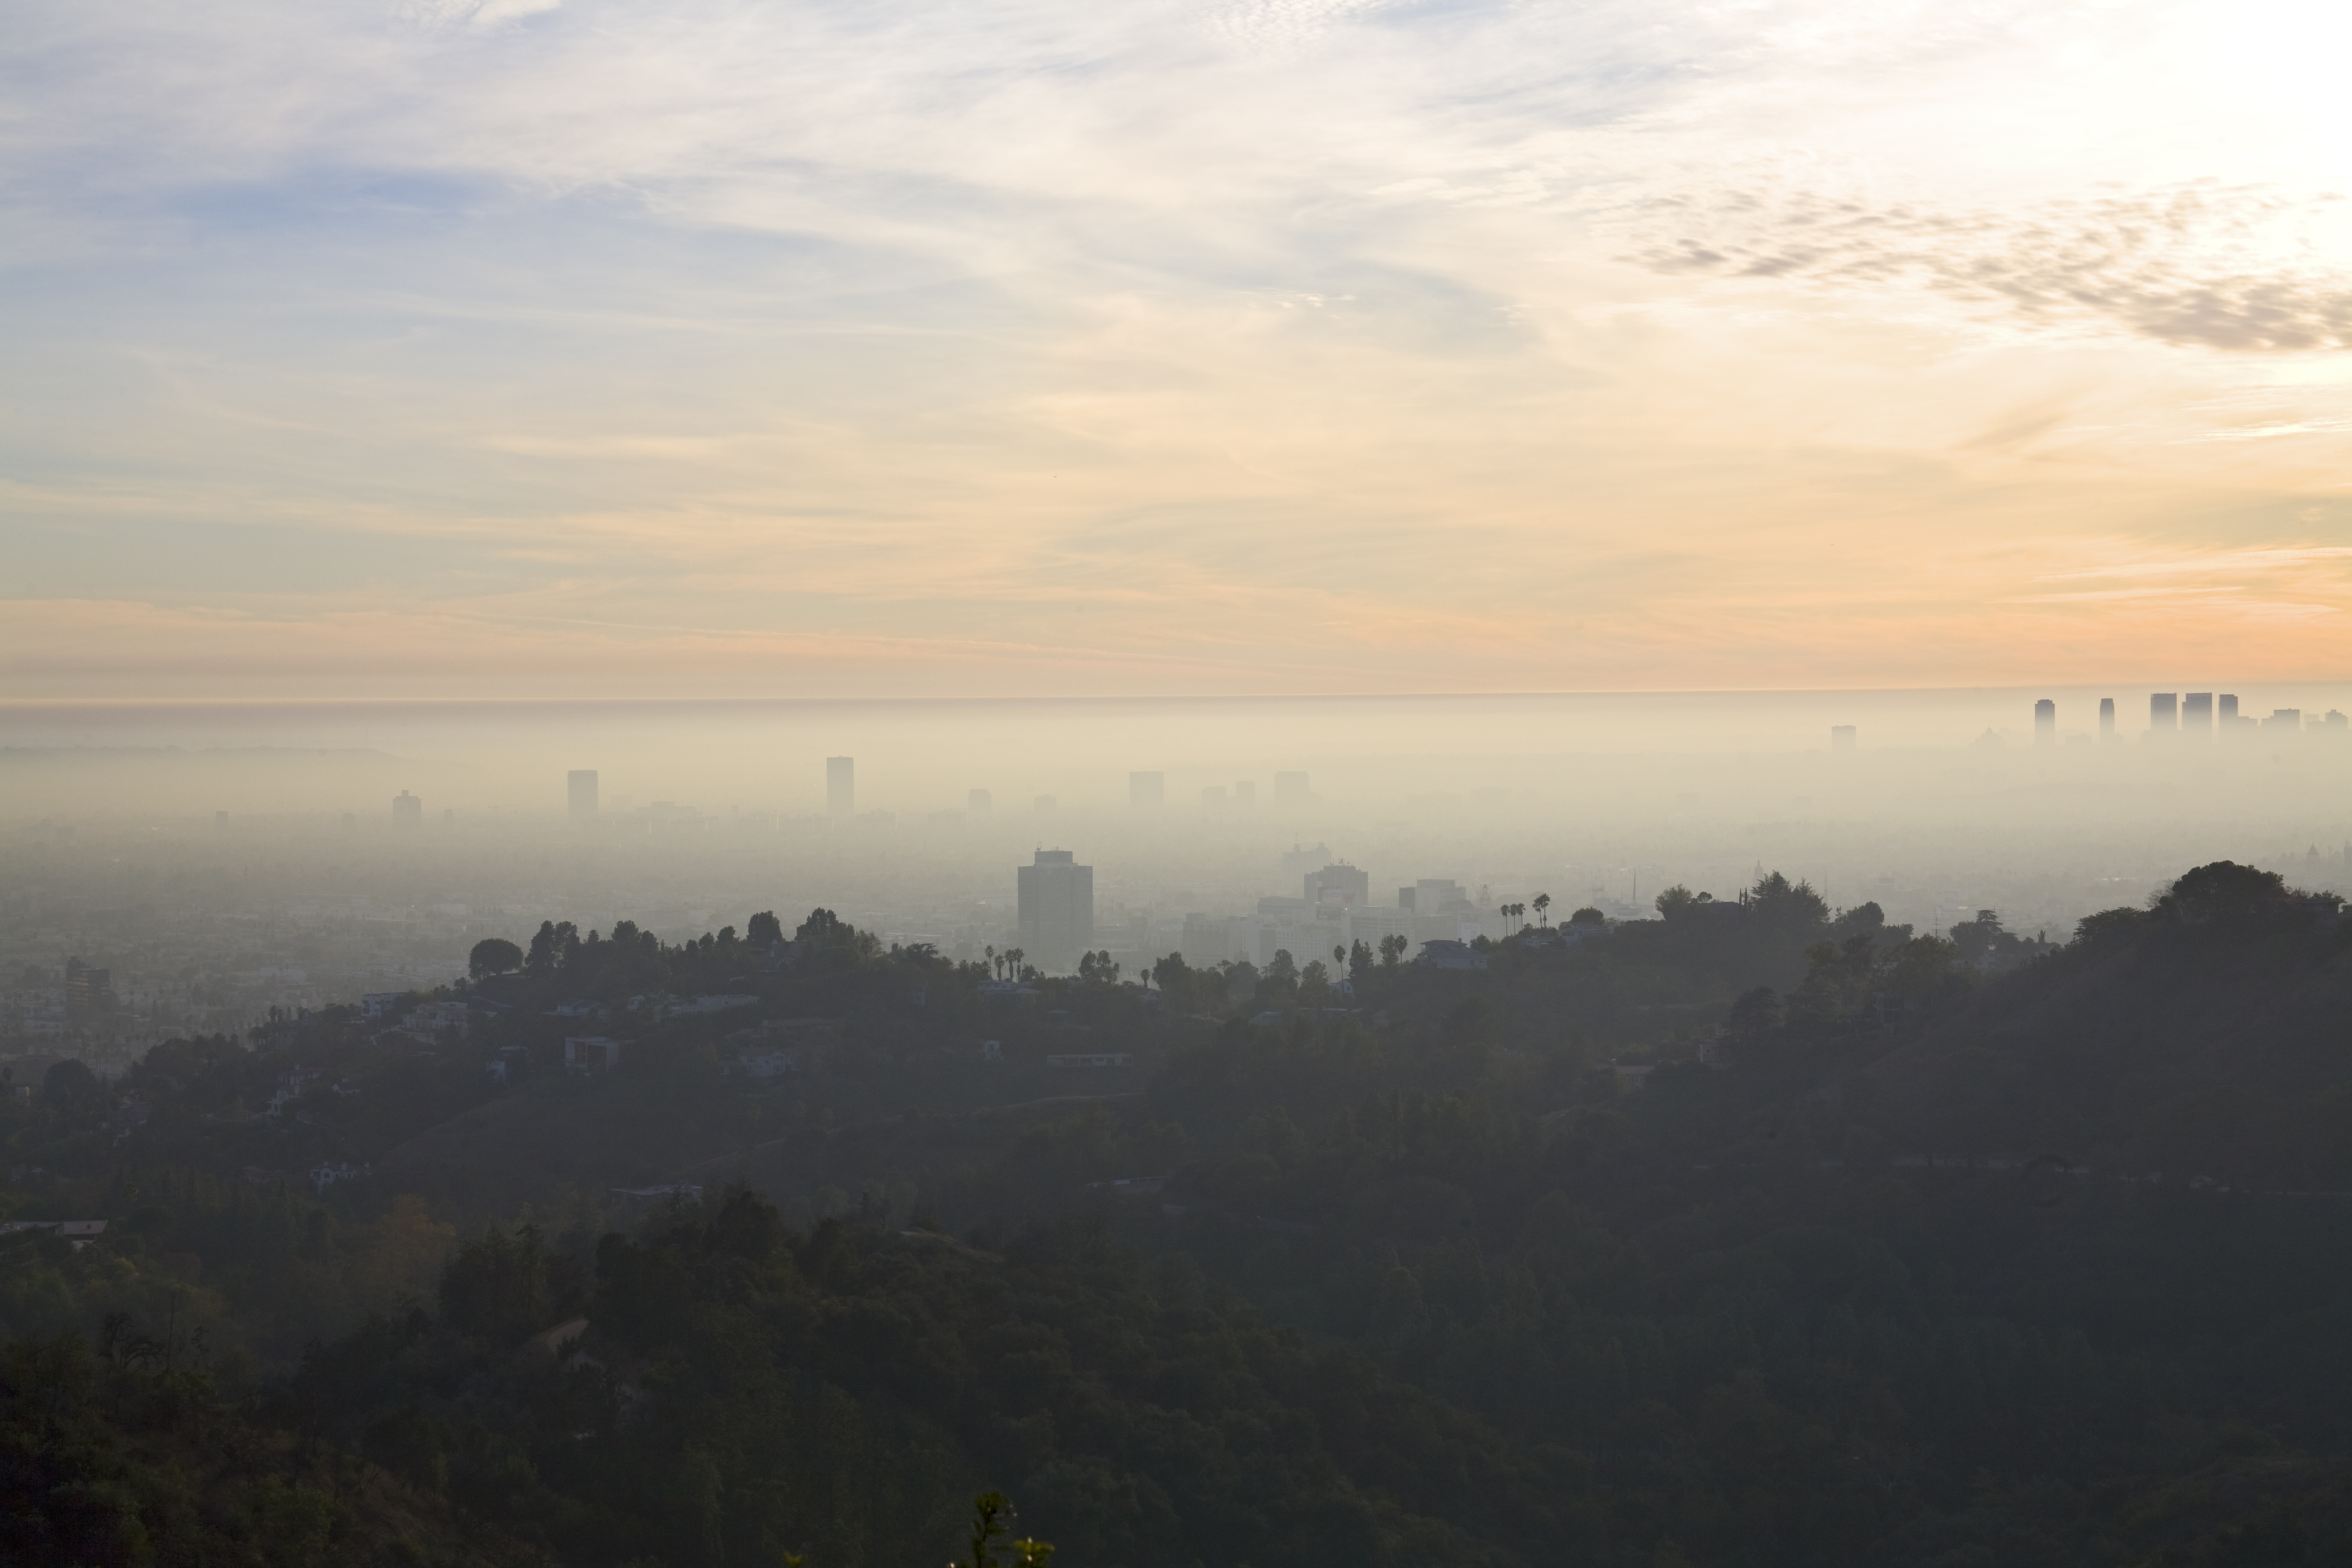 A view of the Hollywood Hills with smog and fog